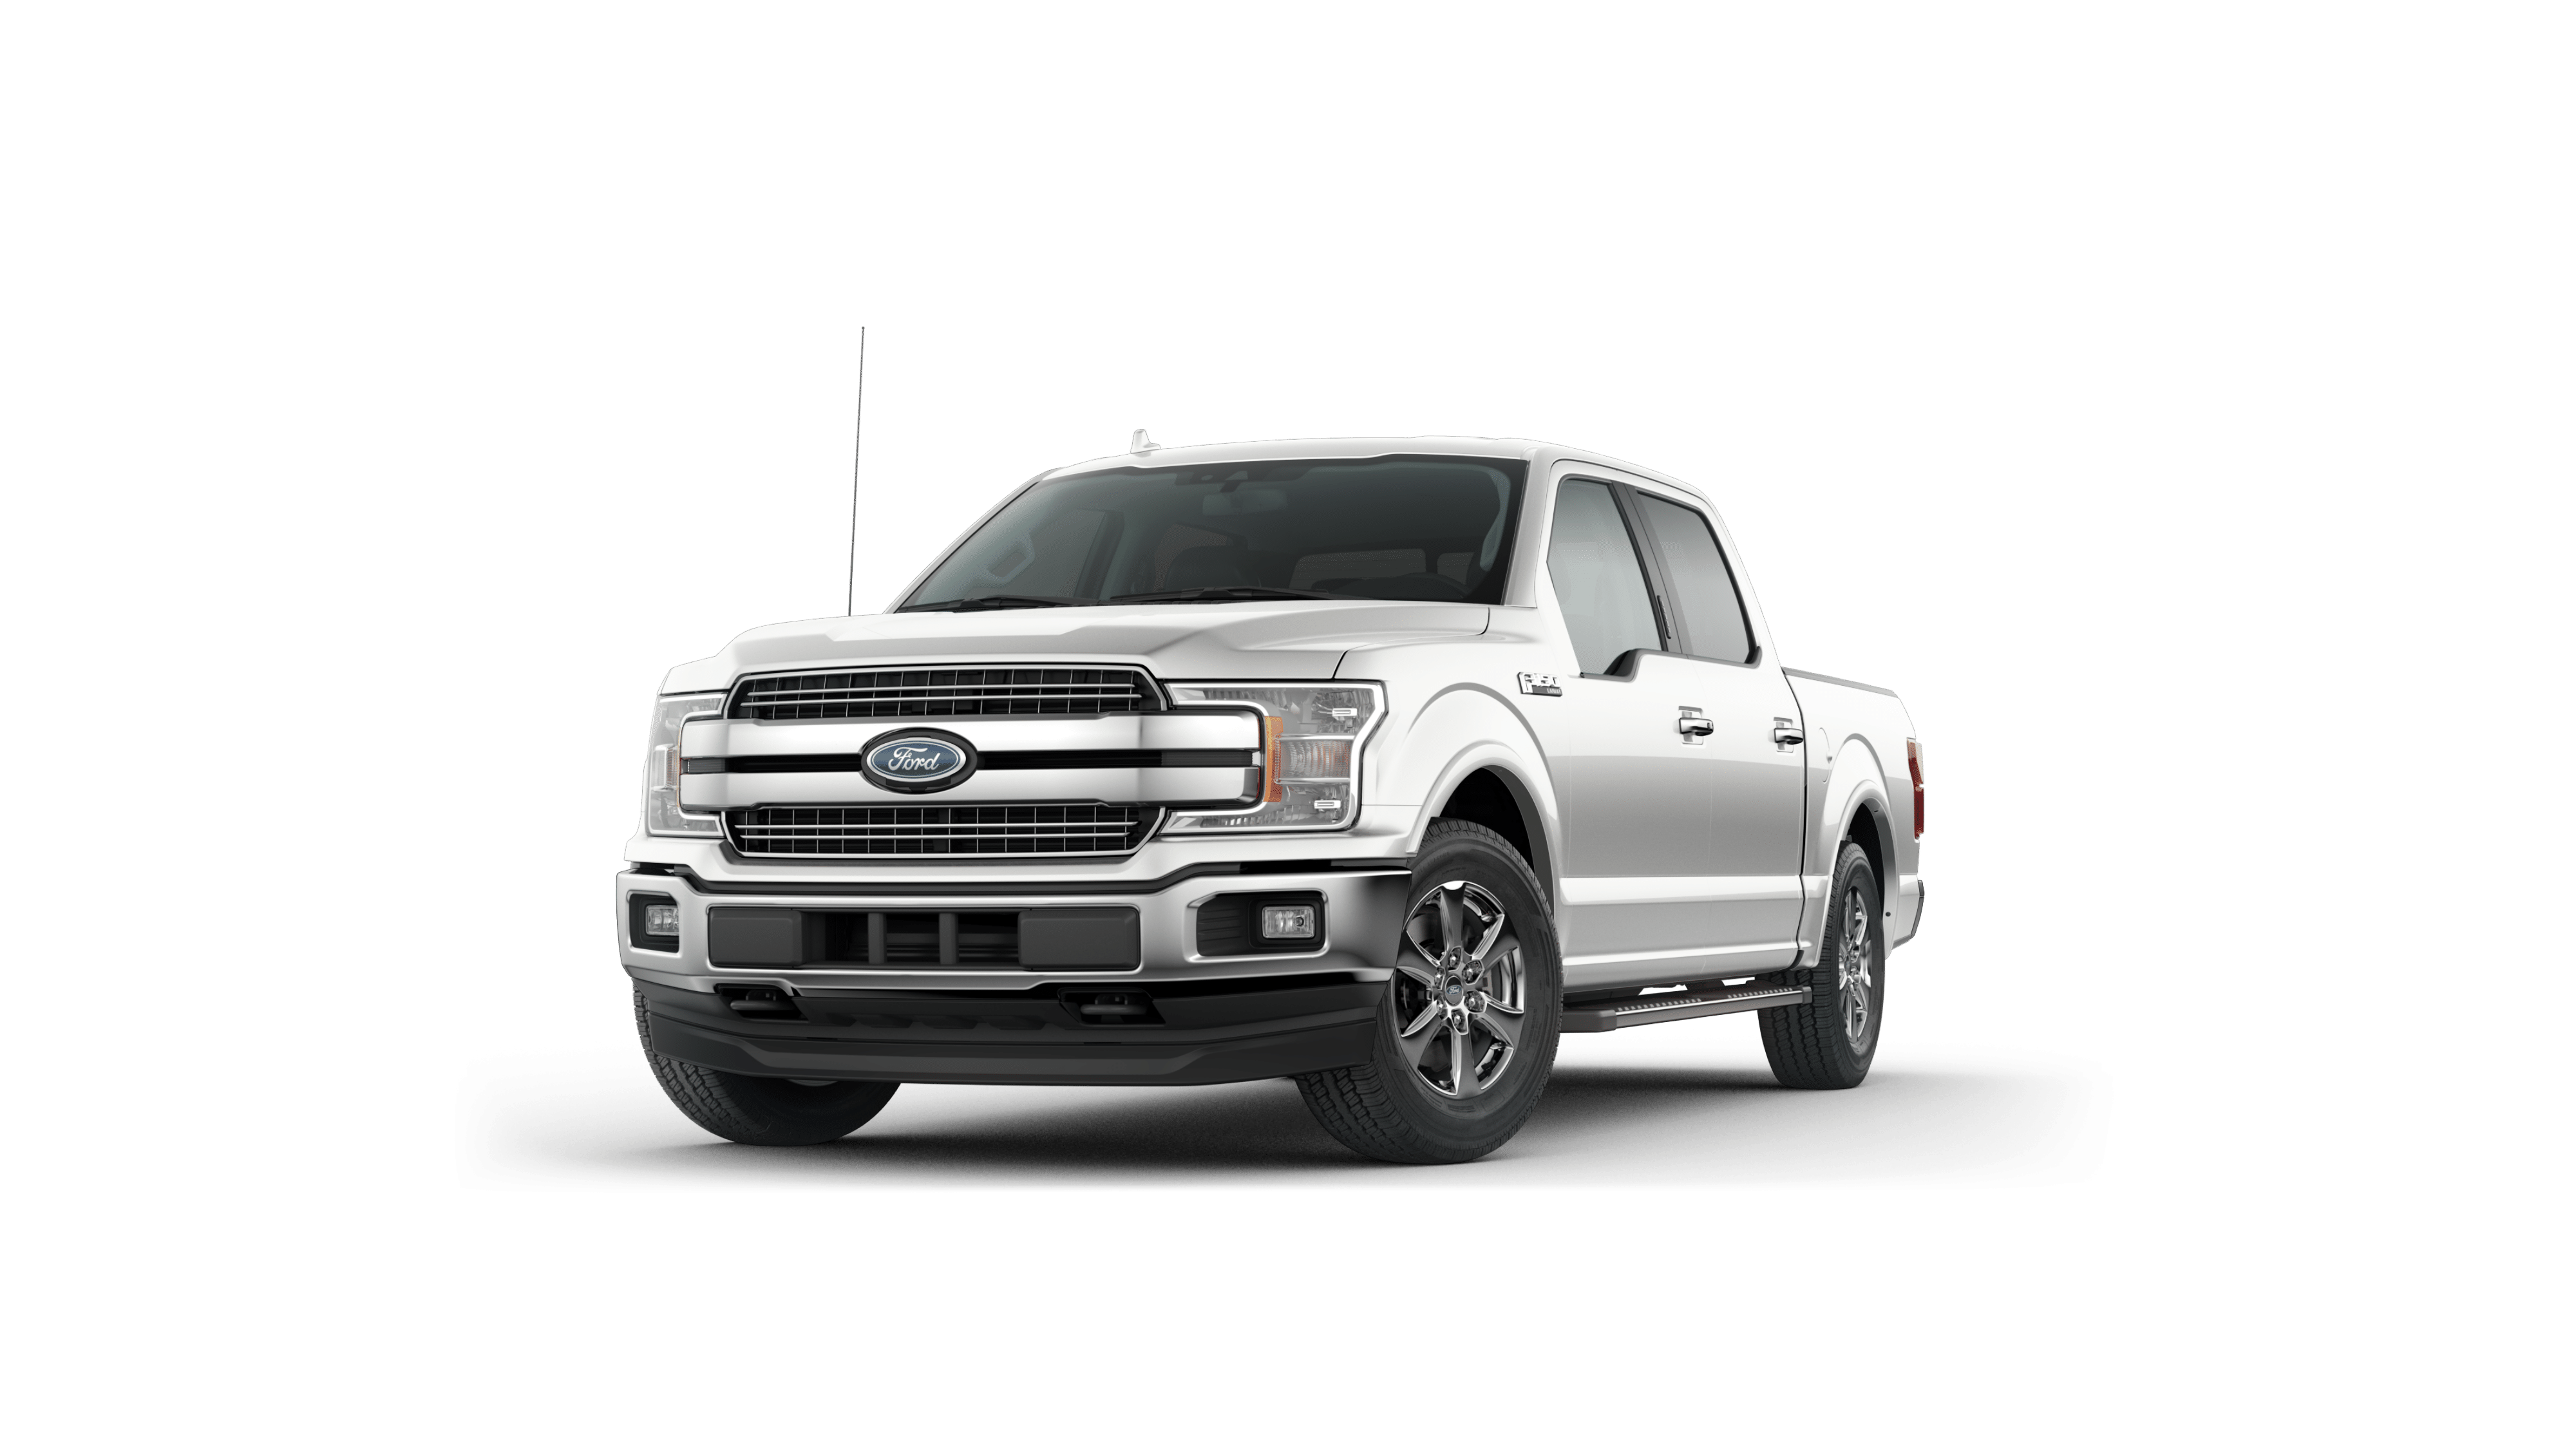 2019 Ford F-150 Vehicle Photo in Quakertown, PA 18951-1403